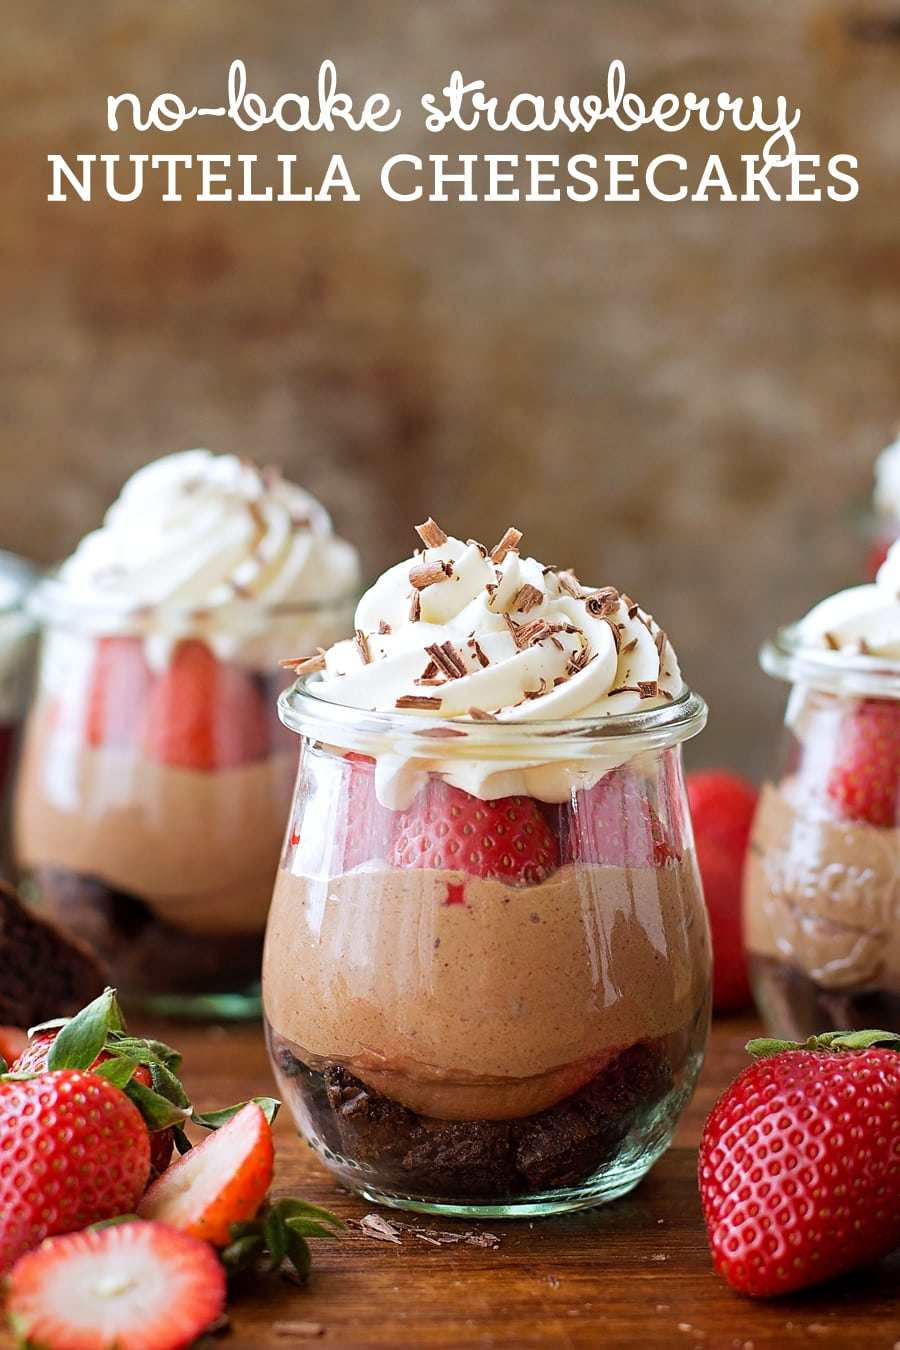 No-Bake Strawberry Nutella Cheesecakes - Brownie, Nutella cheesecake filling, fresh strawberries, and whipped cream all layered together for a delicious chocolatey dessert!!